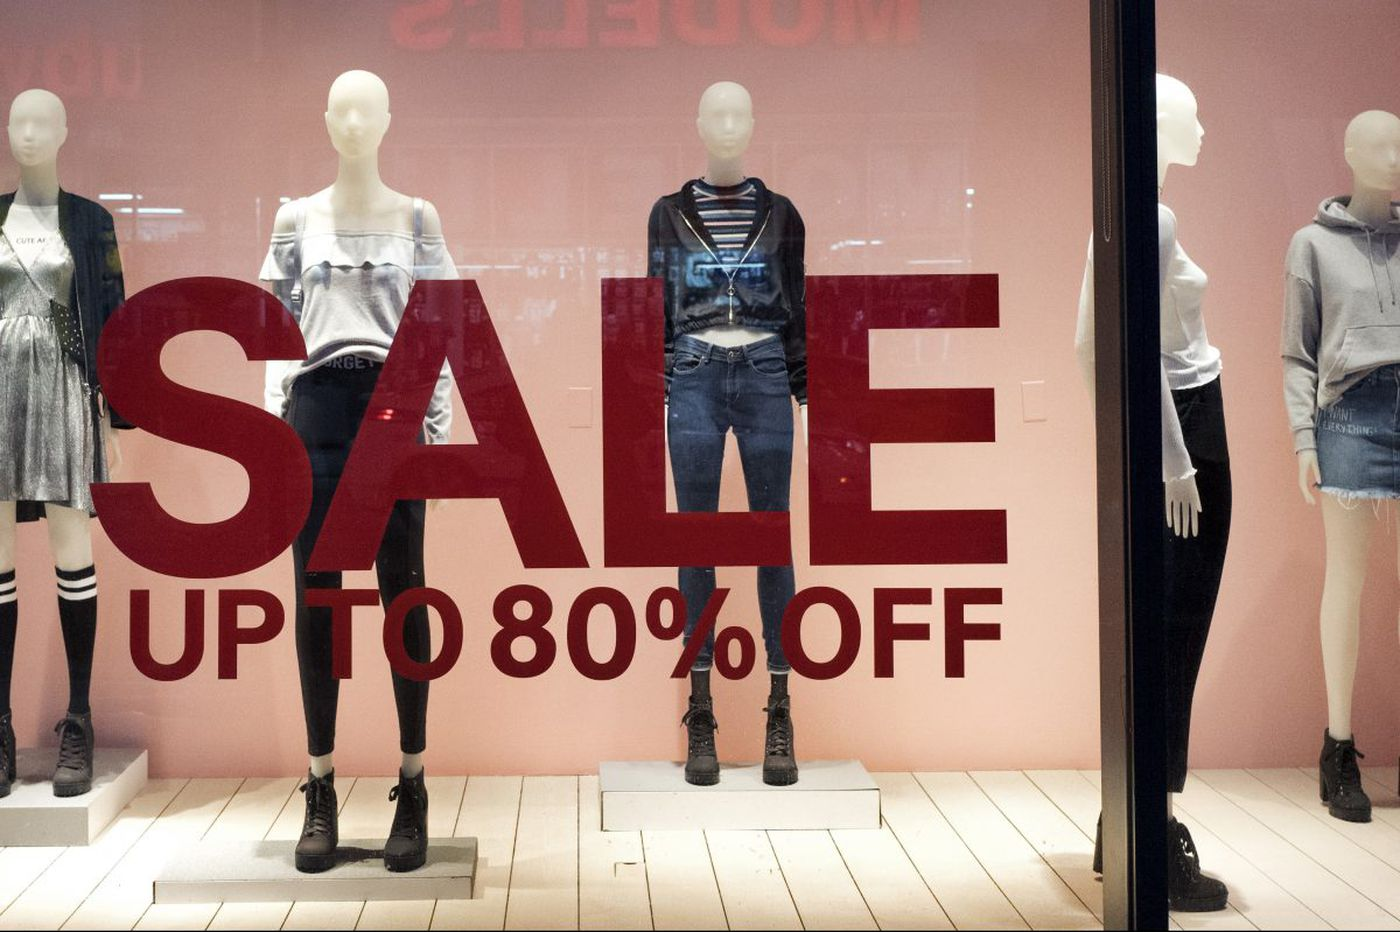 H&M's store closures to surge as fashion giant shifts strategy